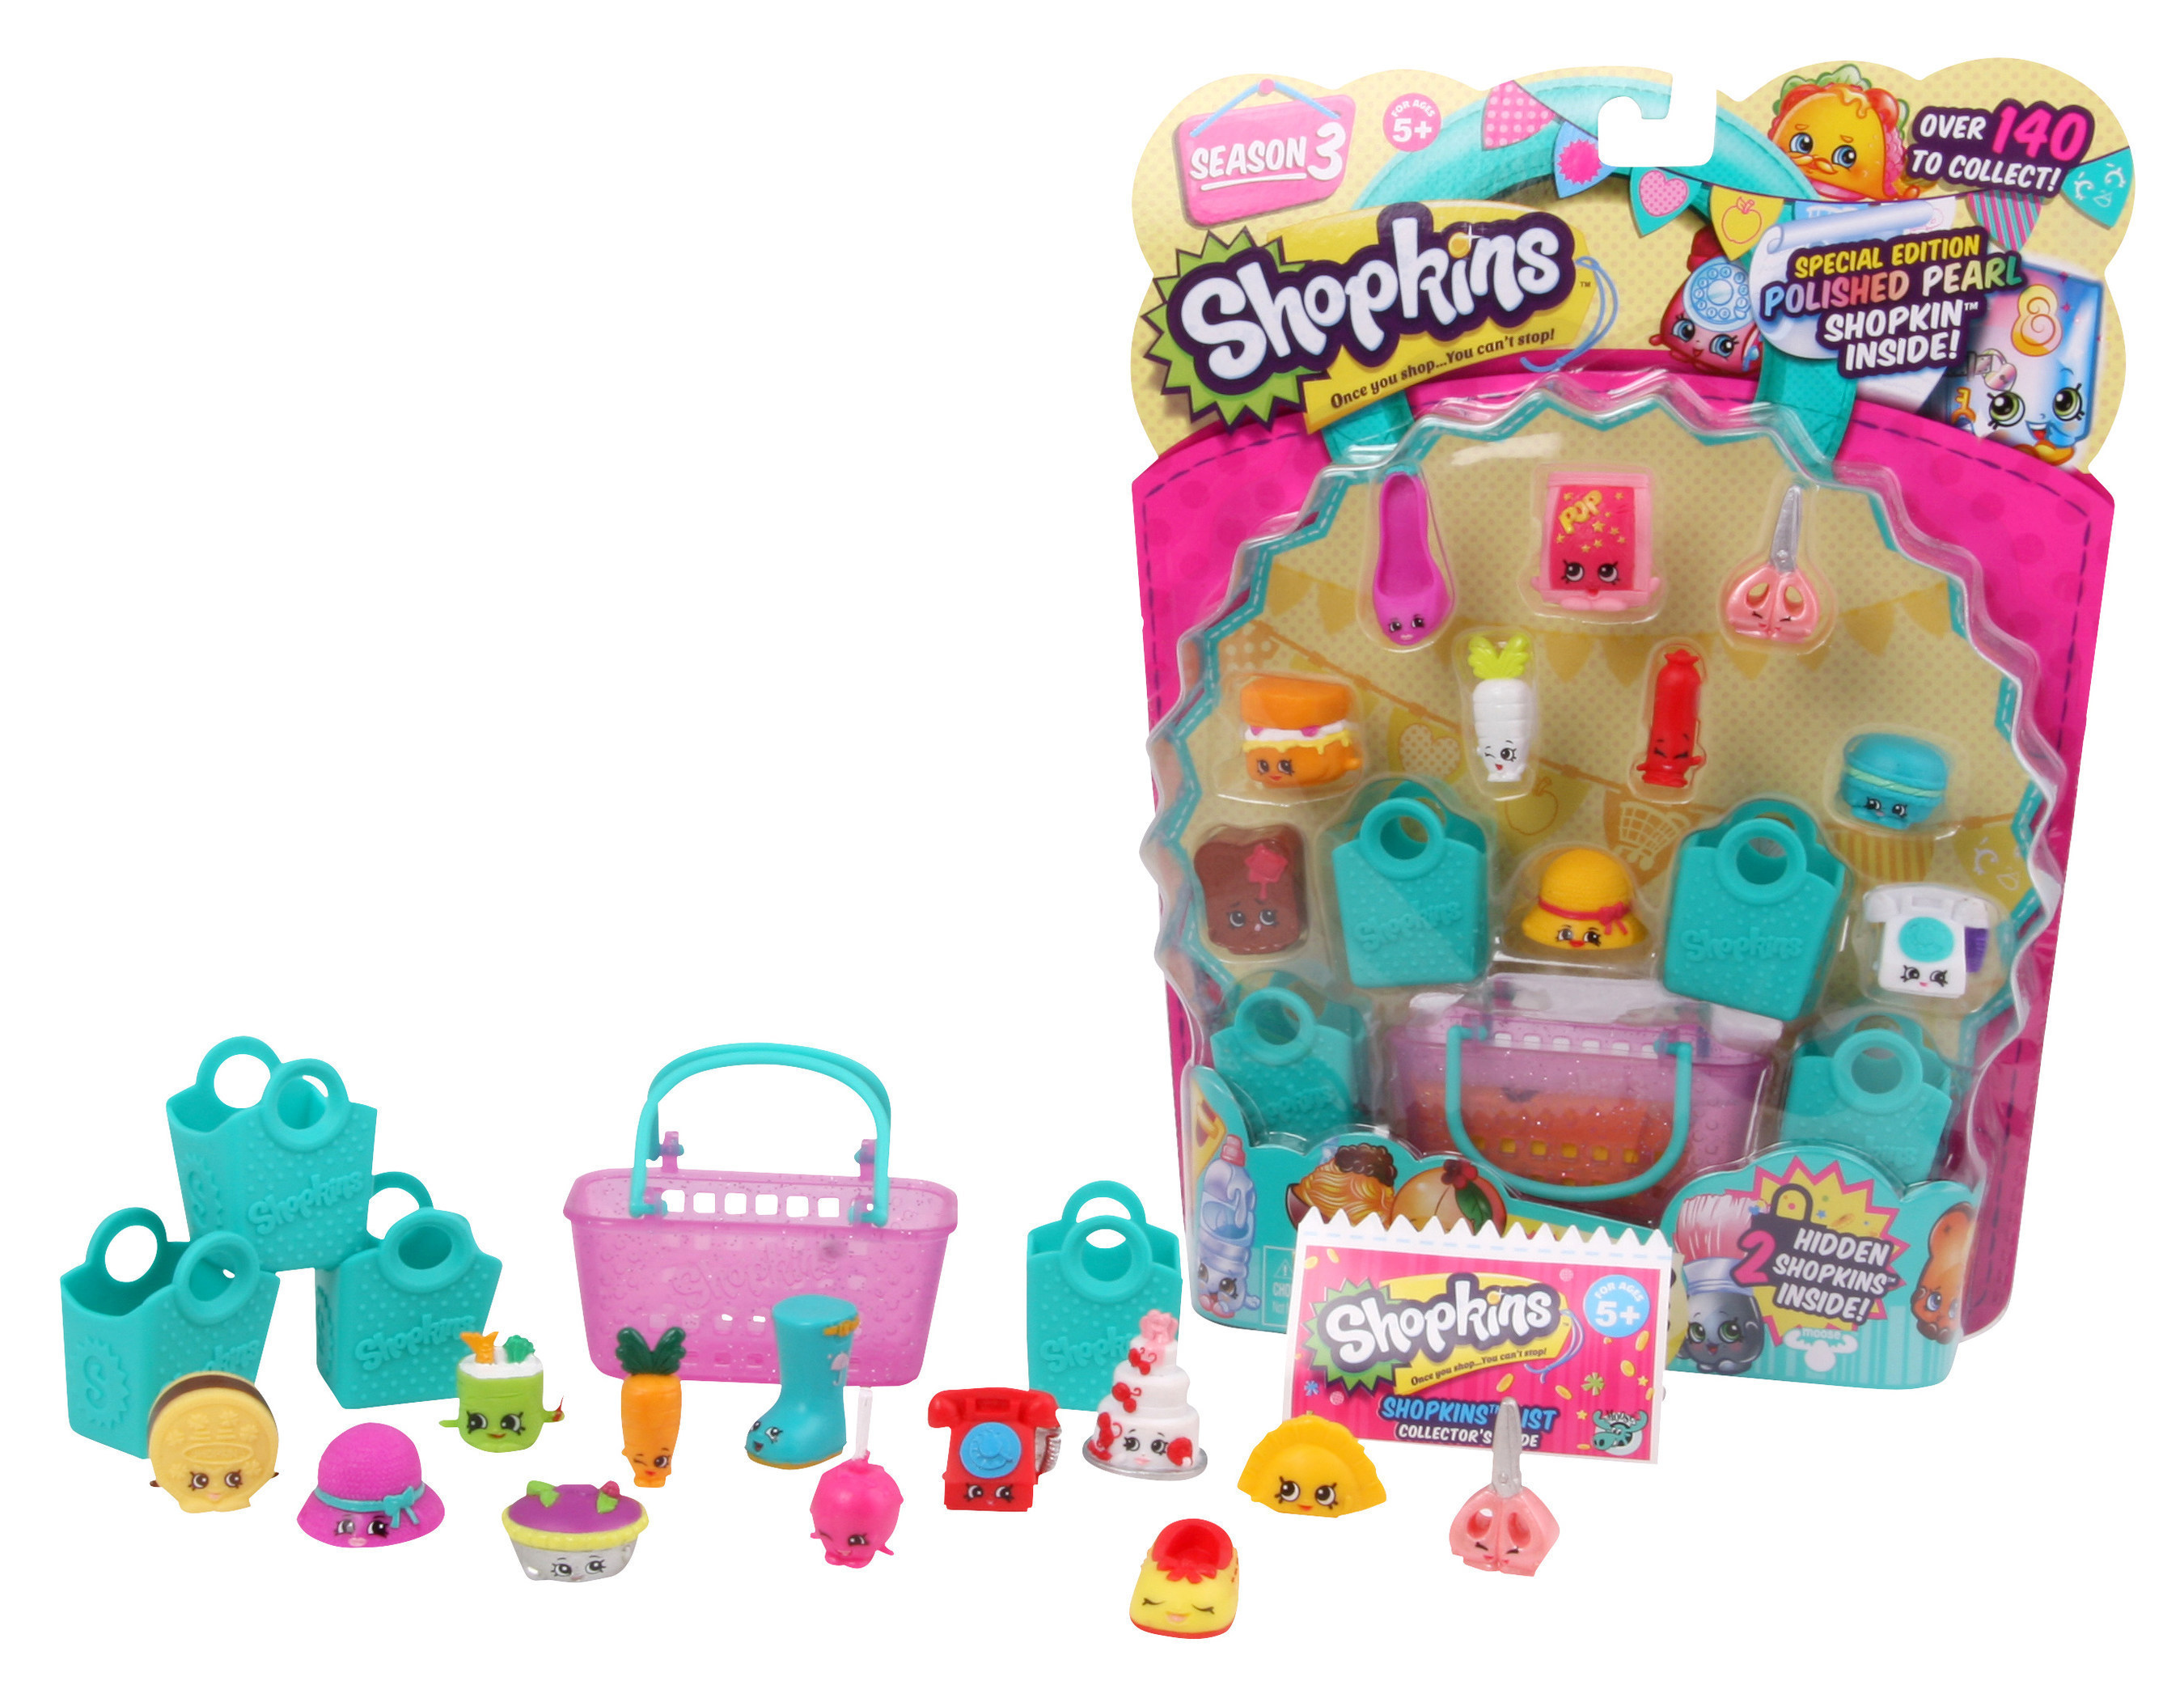 Moose Toys' Shopkins 12-Pack was the hottest selling toy of the year, according to The NPD Group Inc. / Retail Tracking Service. The biggest tiny toy brought a strong force to retail sales in 2015, beating toys from major movies and television shows.